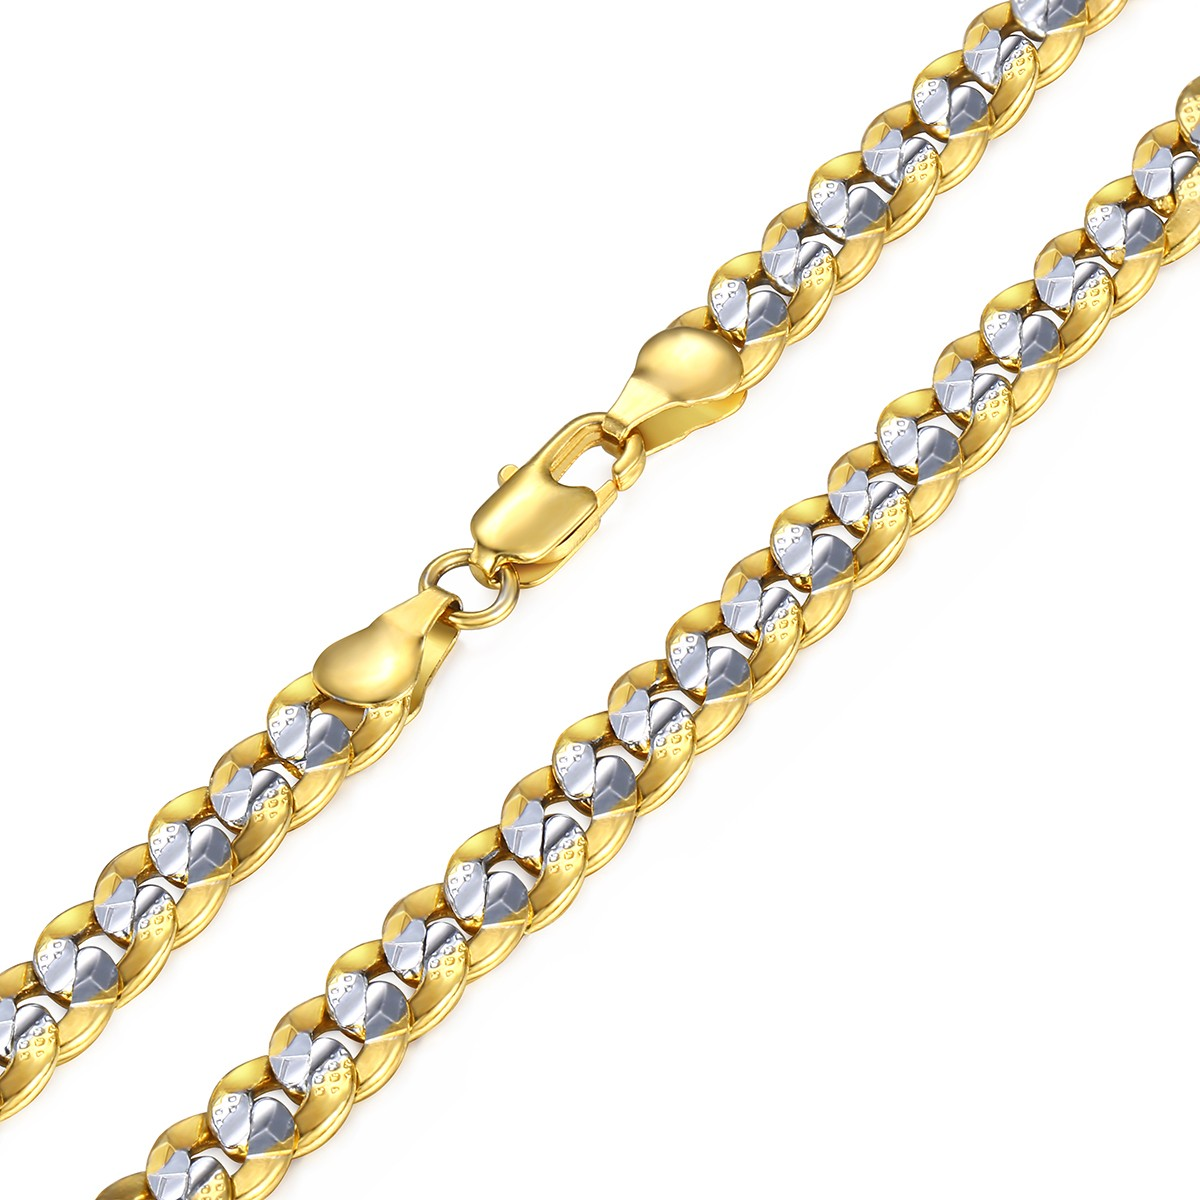 6mm silver gold chain necklaces for women mens curb link gold filled 6mm silver gold chain necklaces for women mens aloadofball Choice Image